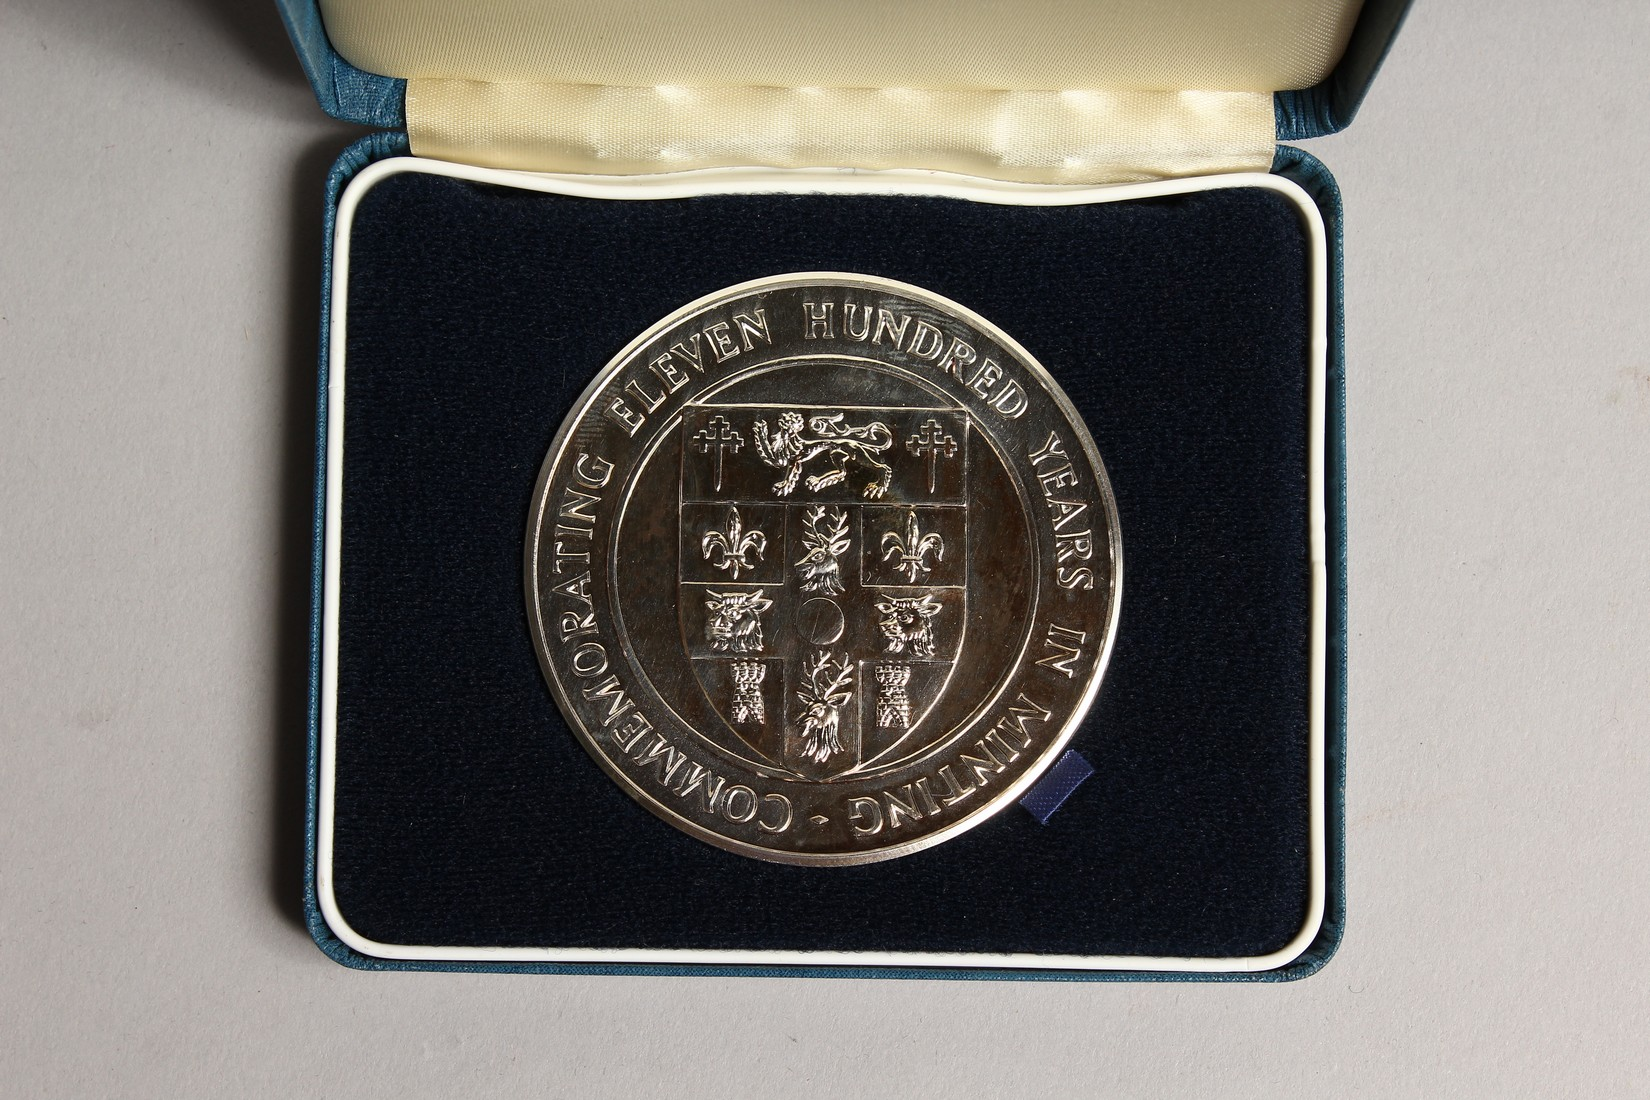 ONE HUNDRED YEARS IN MINTING, SILVER PROOF MEDALLION in a box issued by the Royal Mint, no.886 - Image 2 of 3